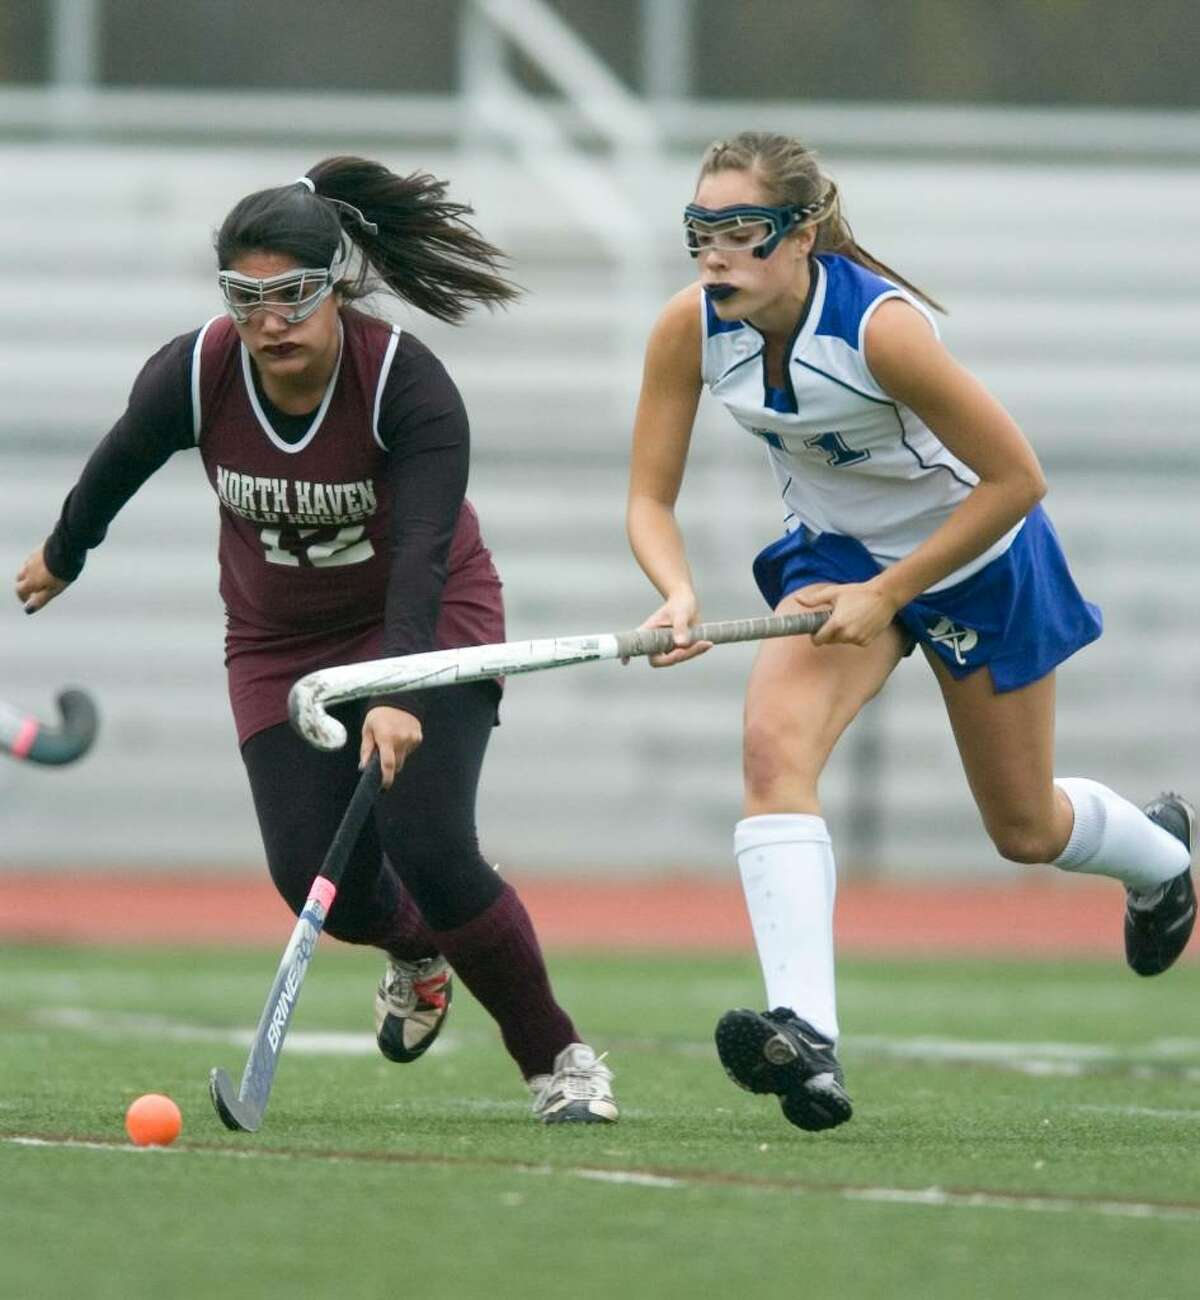 Darien's Alex Bair, right, and North Haven's, Alia Mahmood, left, during the first round of the CIAC girls field hockey tournament at Darien High School in Darien, Conn. on Tuesday, Nov. 10, 2009.